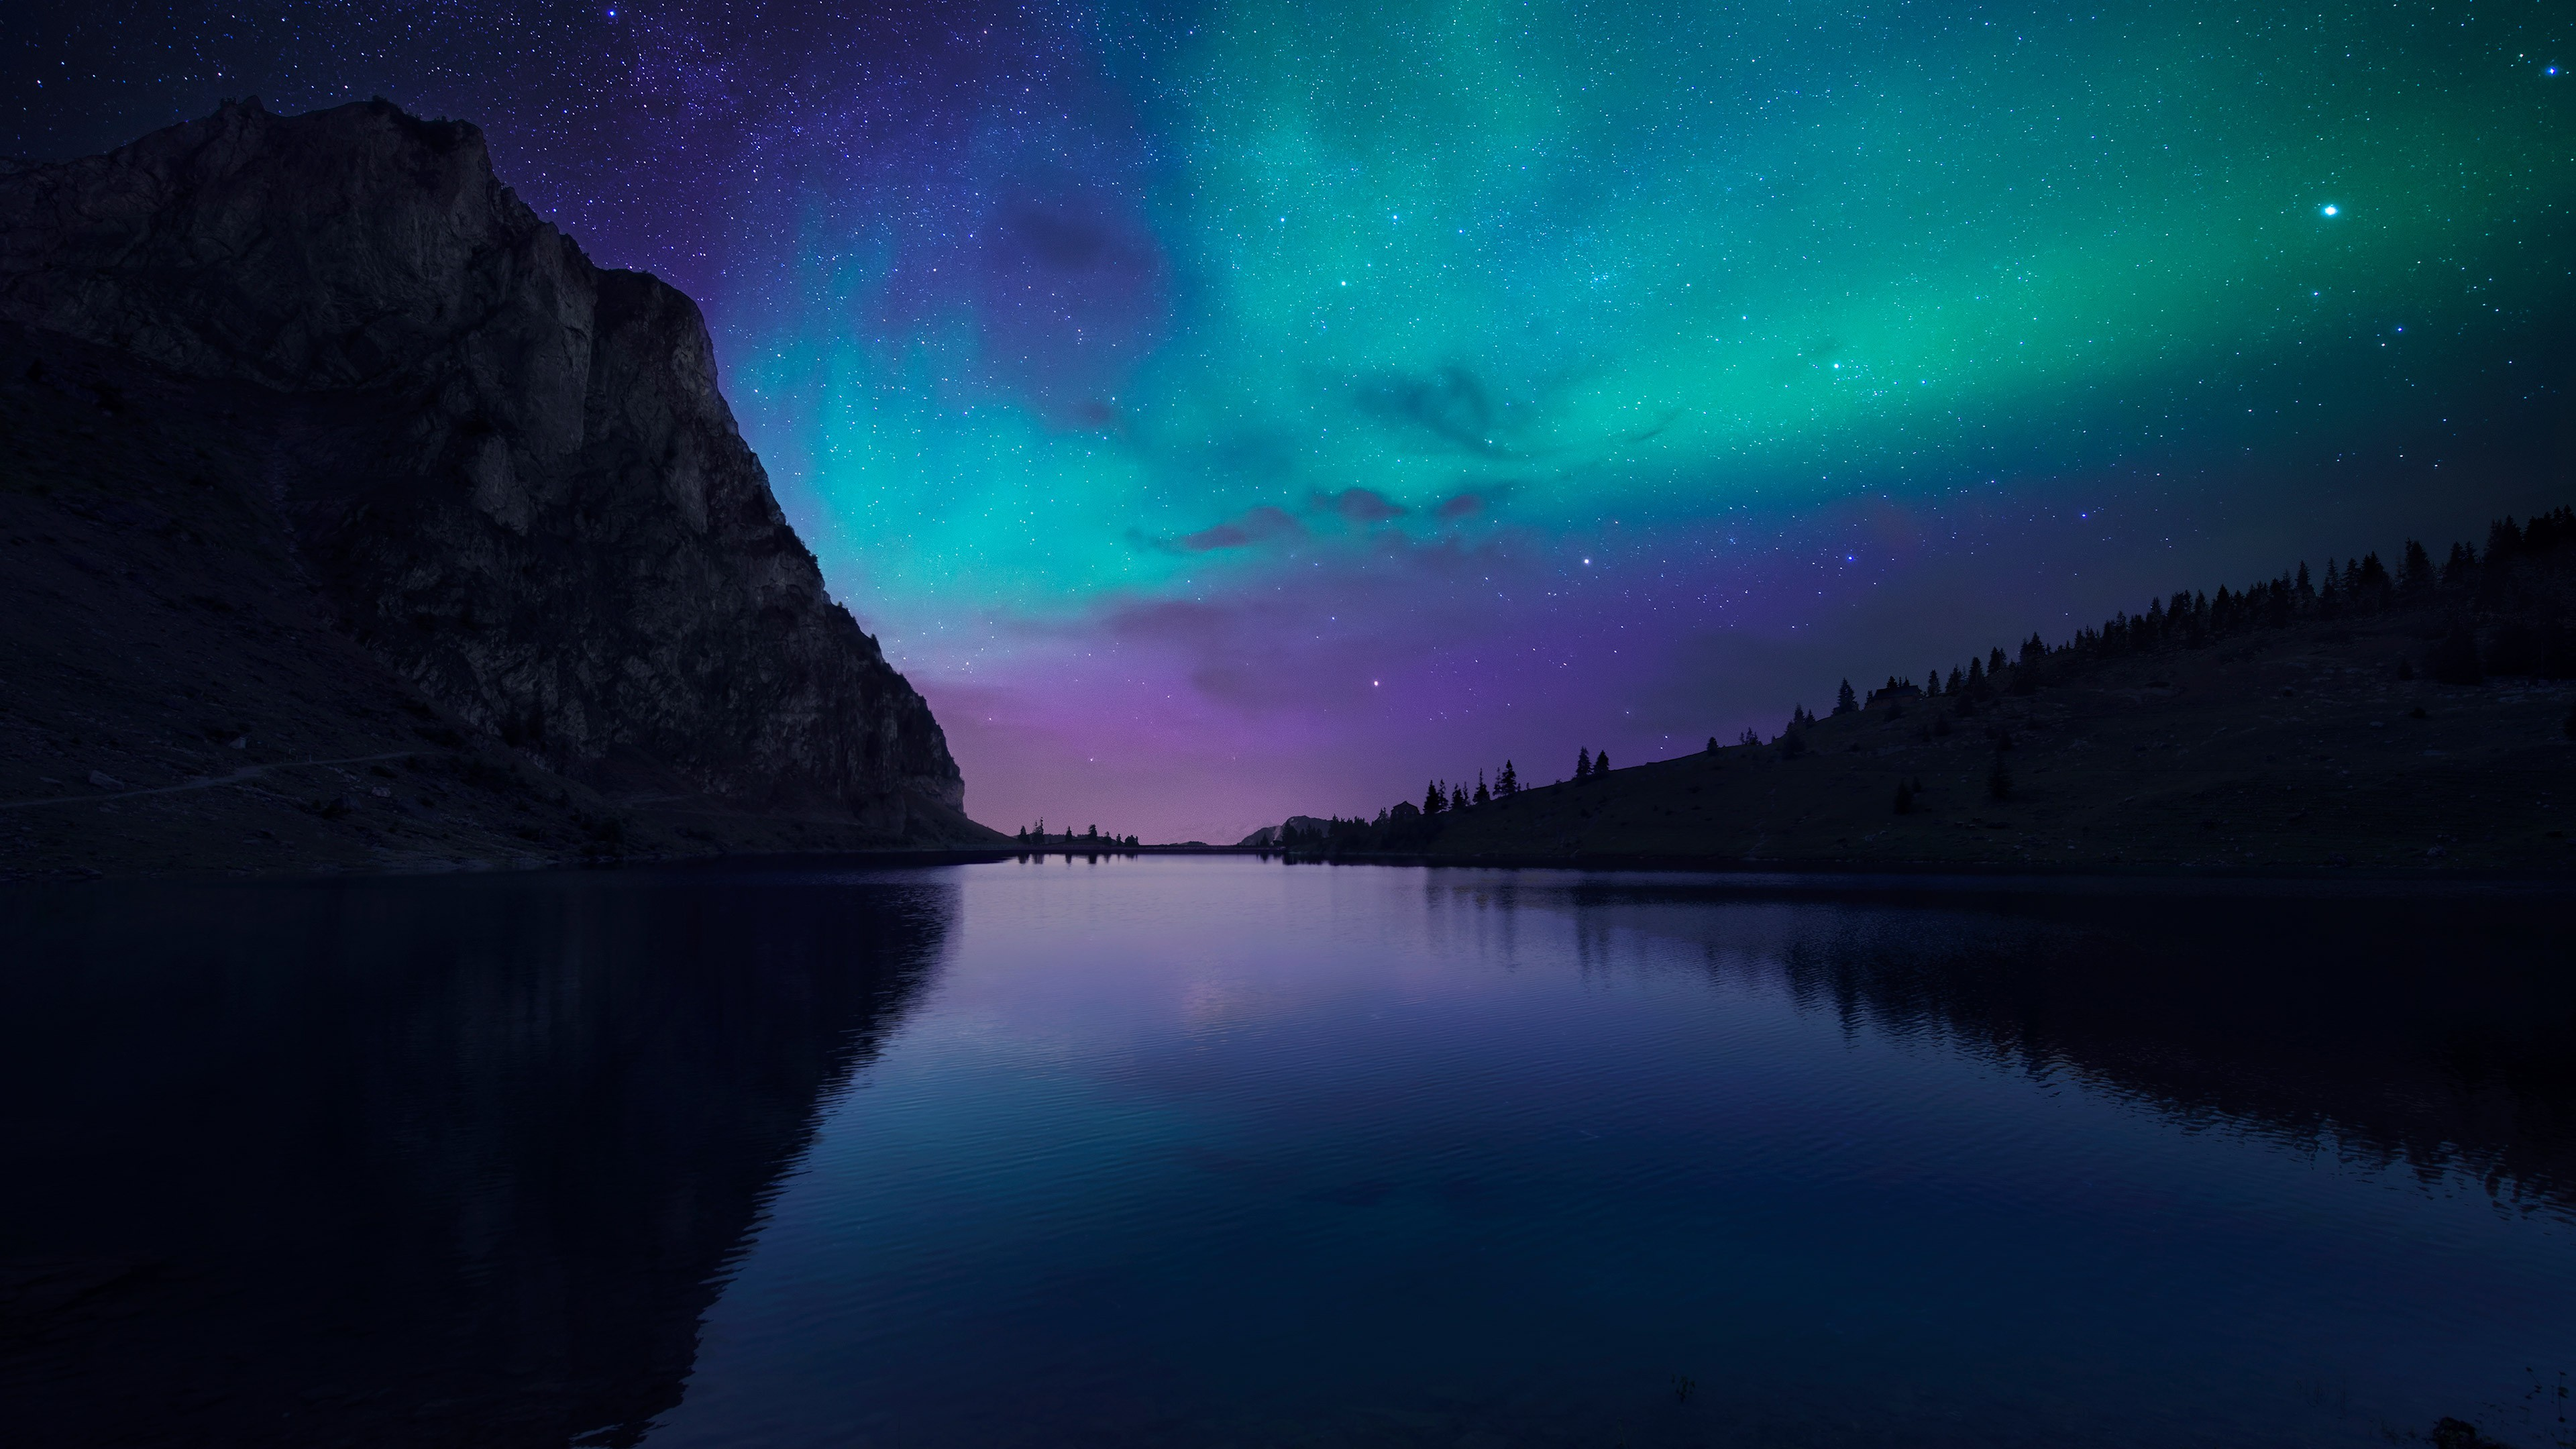 Wallpaper lake aurora 4k hd wallpaper florida night for Wallpaper home 4k